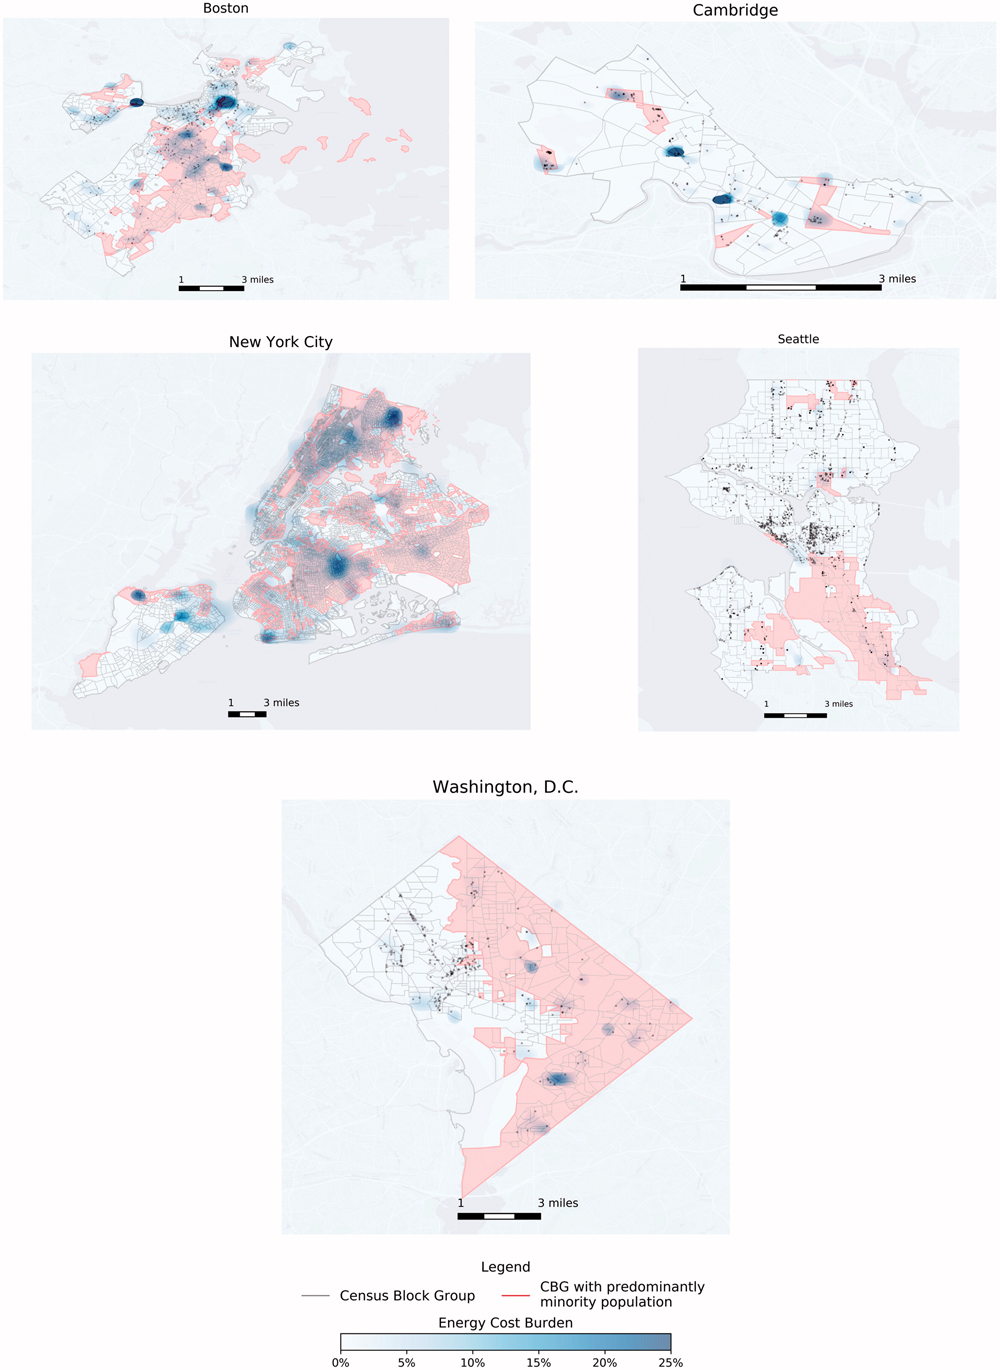 "Spatial dispersion of energy cost burdens (blue heat map), properties (in black), and neighborhood classification (predominantly minority census block groups in red) in selected cities, 2015. Figure 3 from the article ""Energy Cost Burdens for Low-Income and Minority Households"" in the Journal of the American Planning Association (Vol. 86, No. 1)."